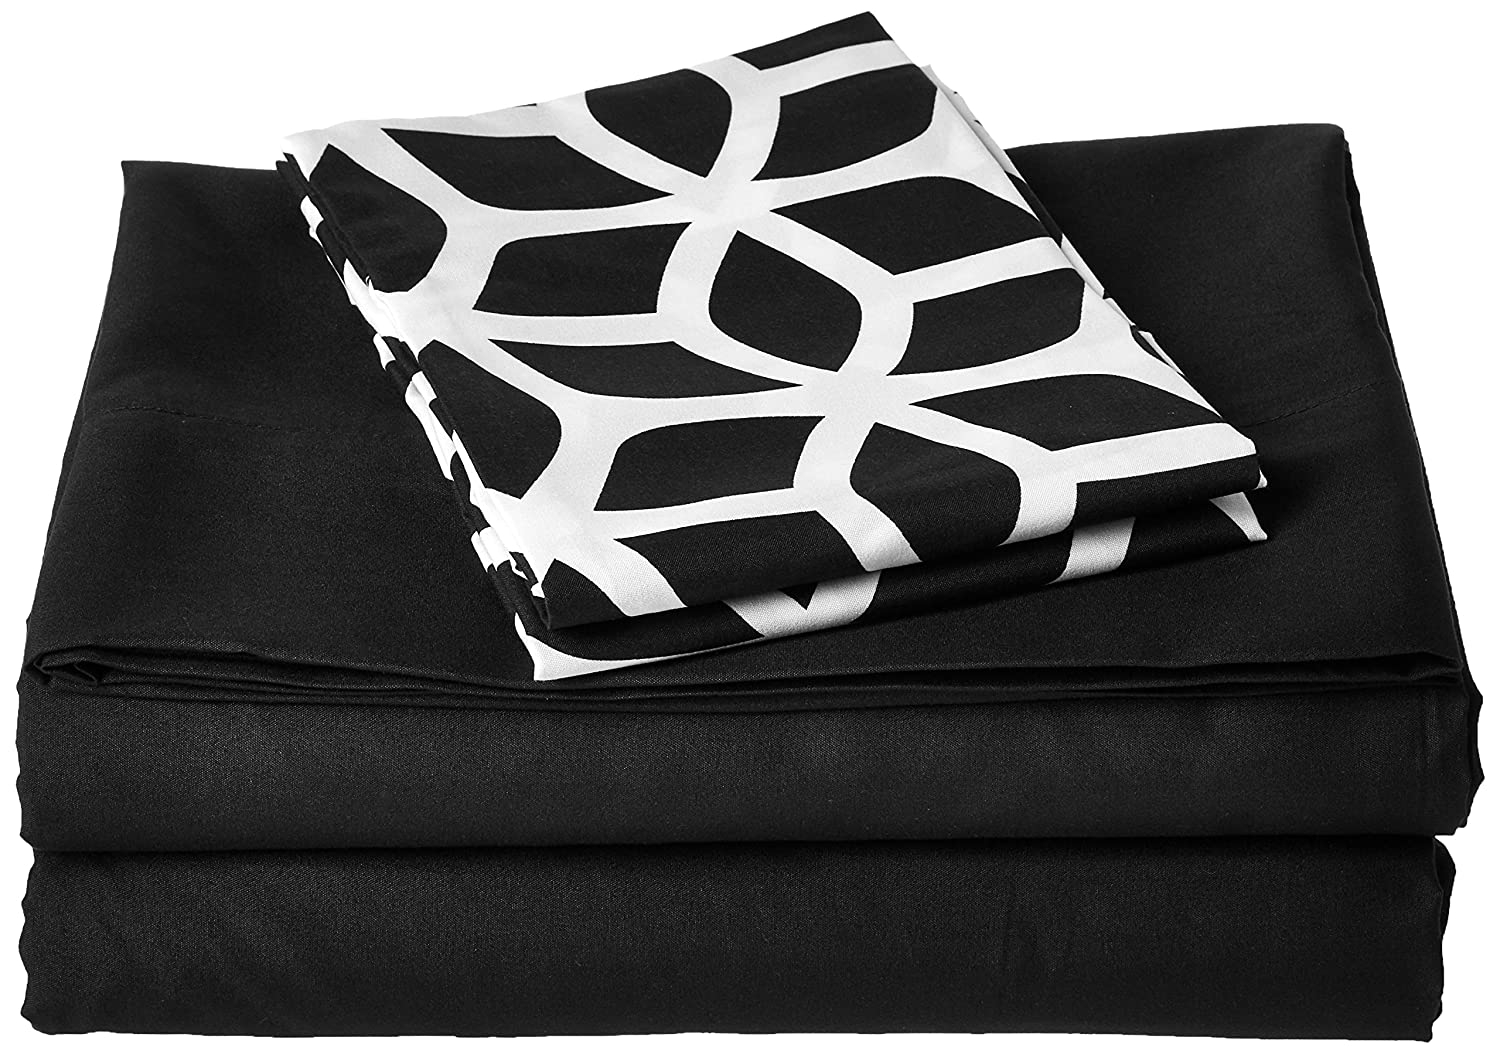 Chic Home 4 Piece Solid Sheet Set Super Soft Brushed Microfiber Sheet Set with 1 Bonus Pillow Case Twin White